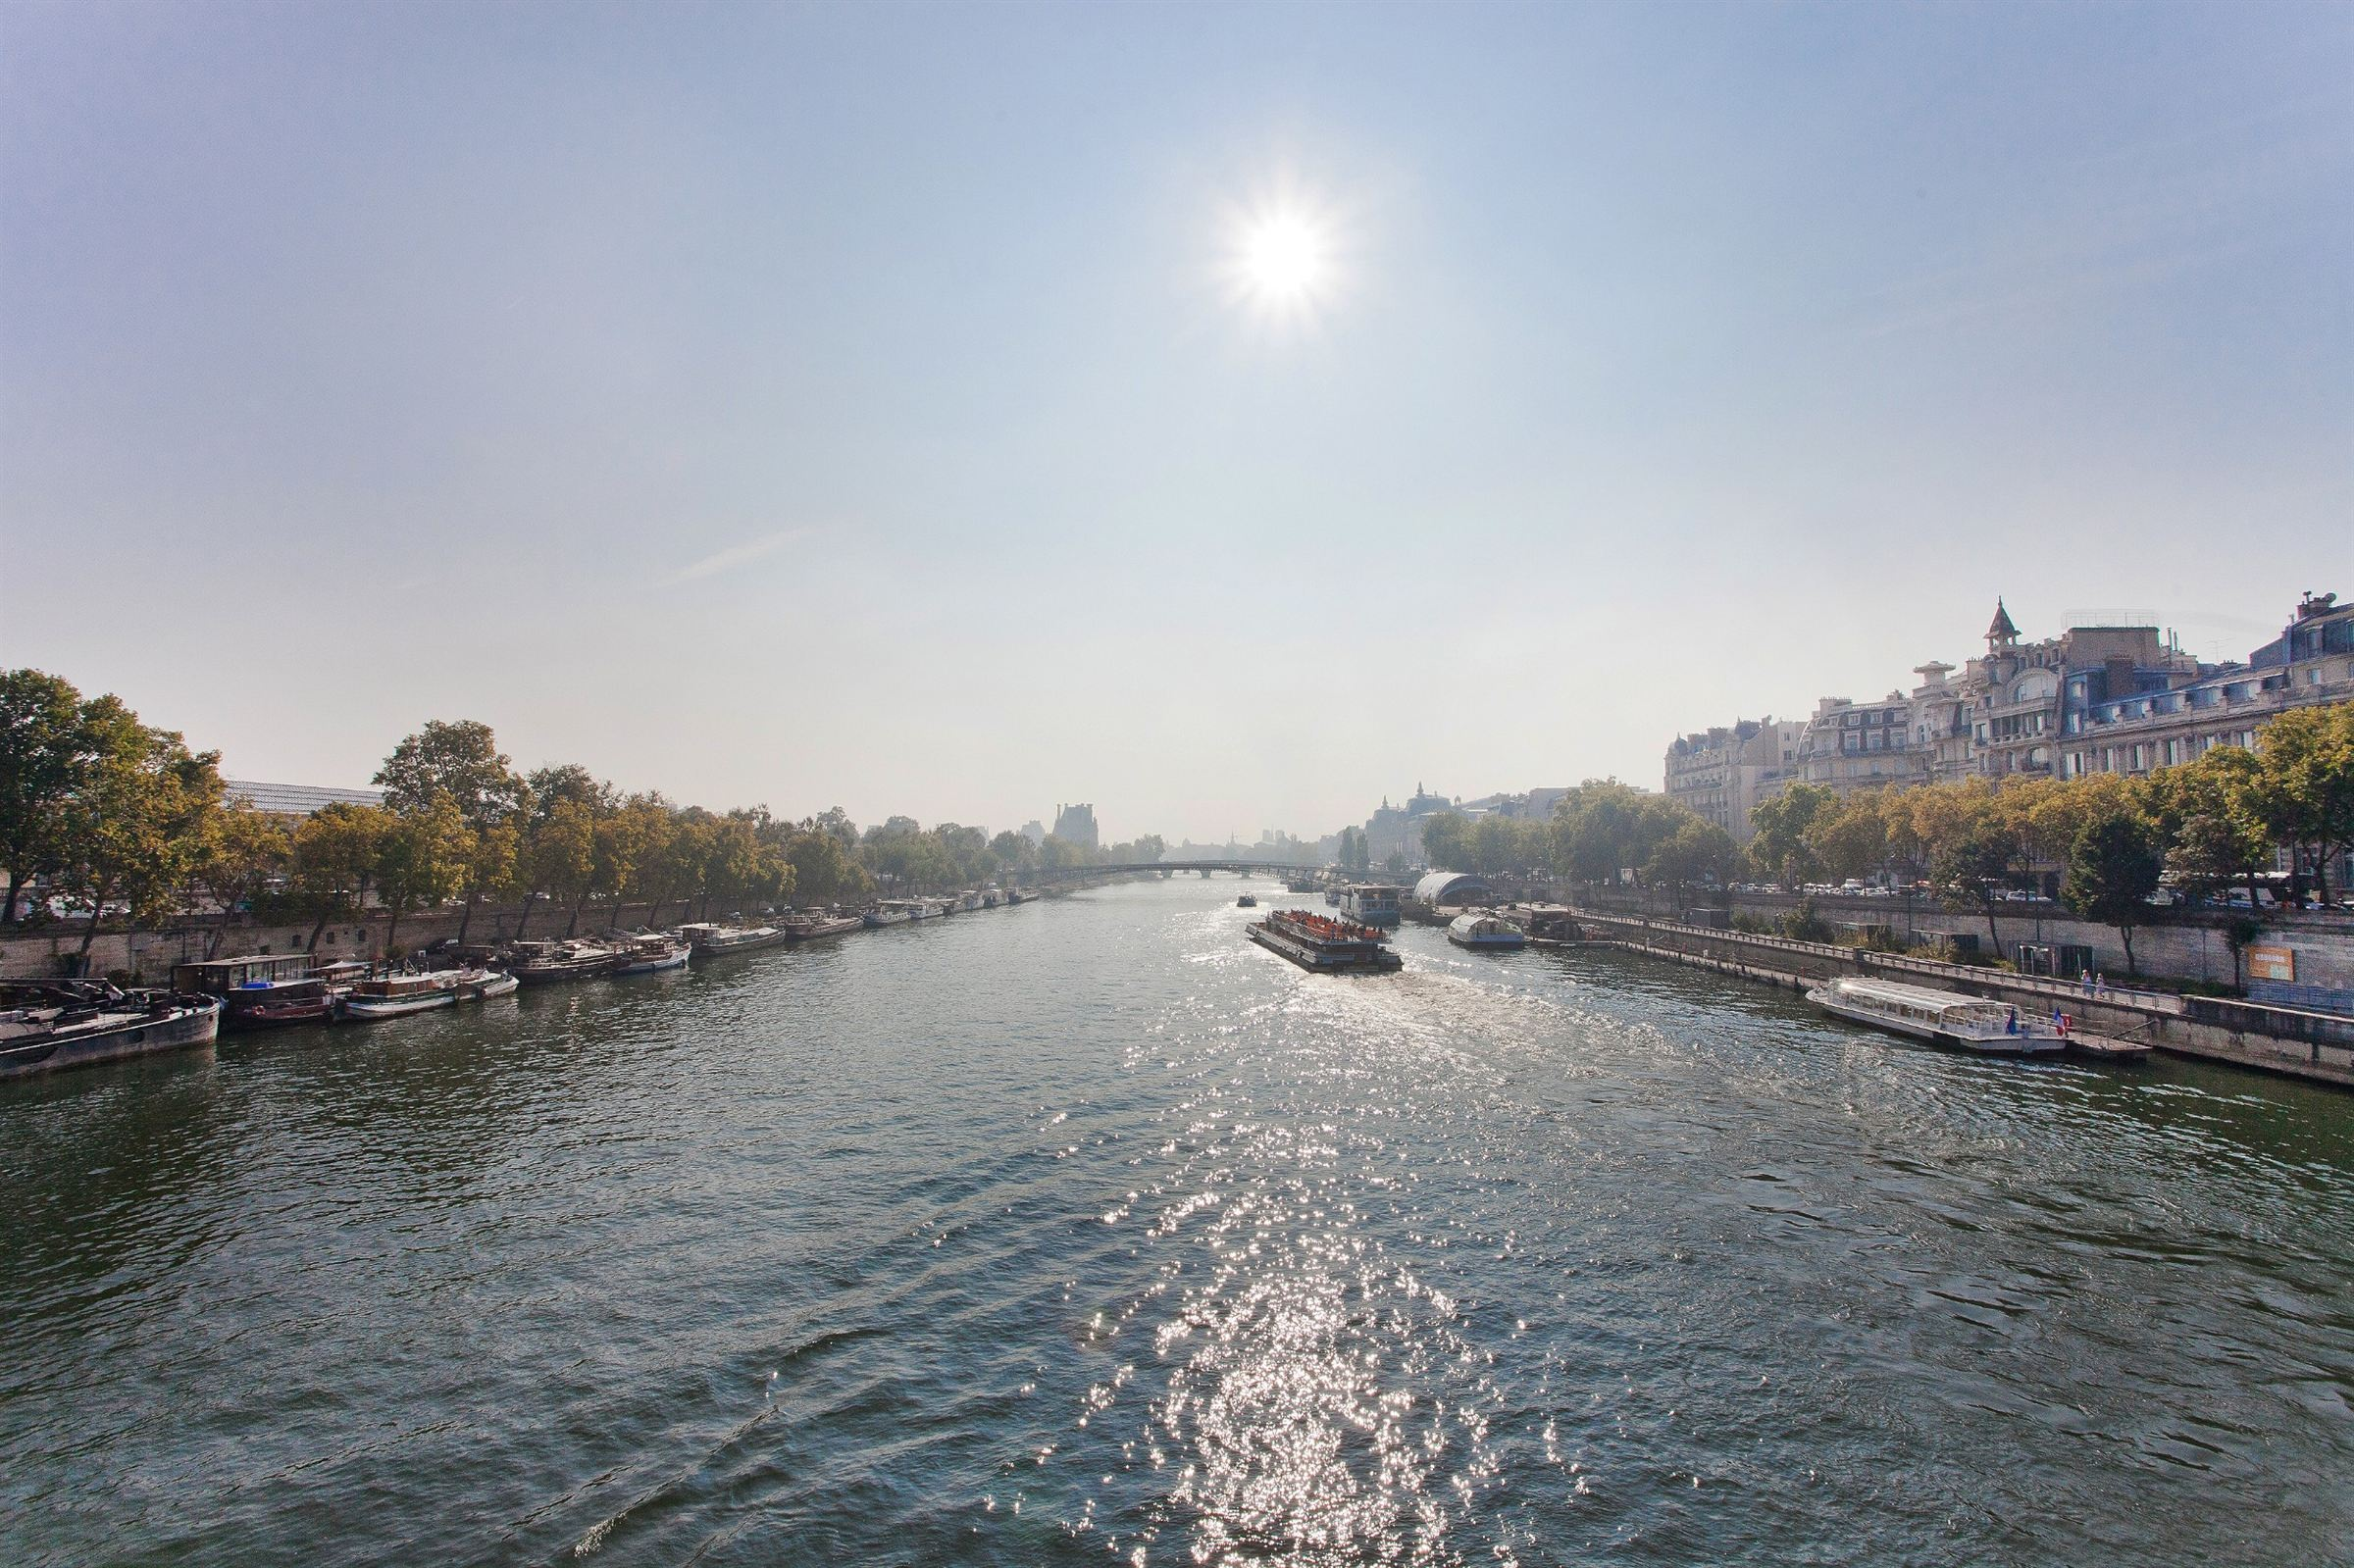 Квартира для того Продажа на Paris 7 - Anatole France. Apartment 325 sq.m., sumptuous, view over the Seine Paris, Париж 75007 Франция